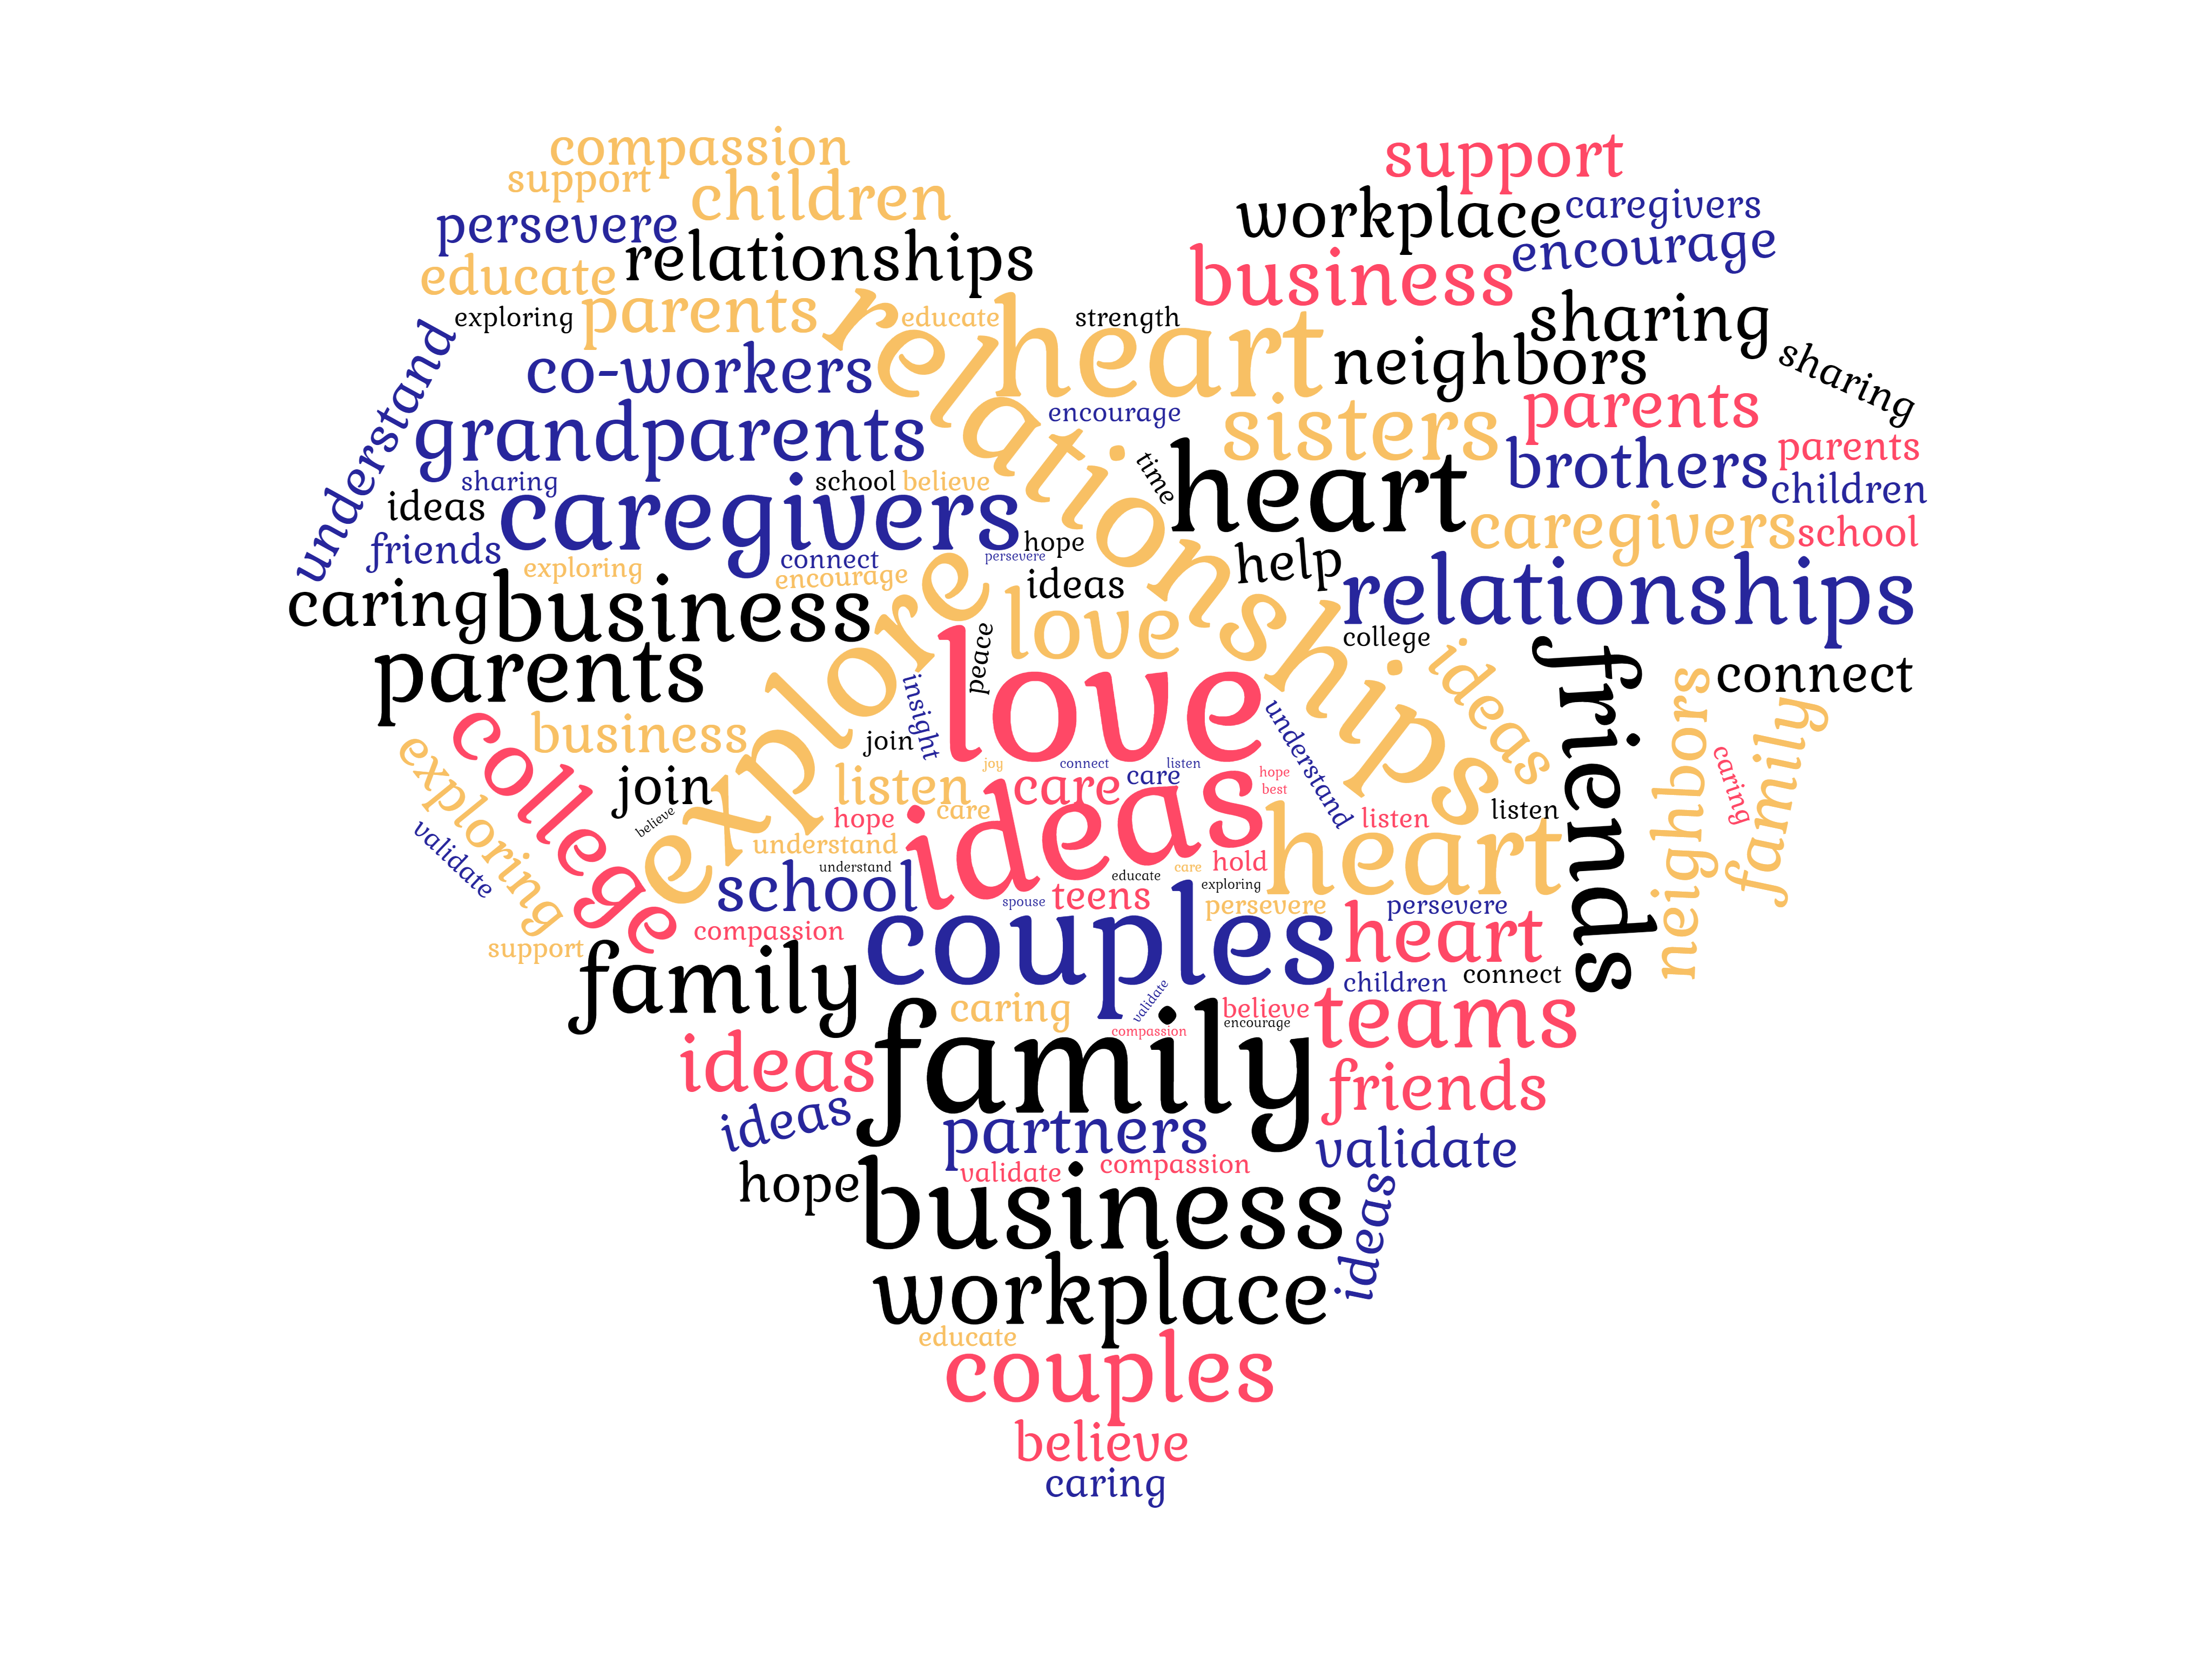 Exploring the Heart of Relationships - Love IDEAS Summit Word Cloud